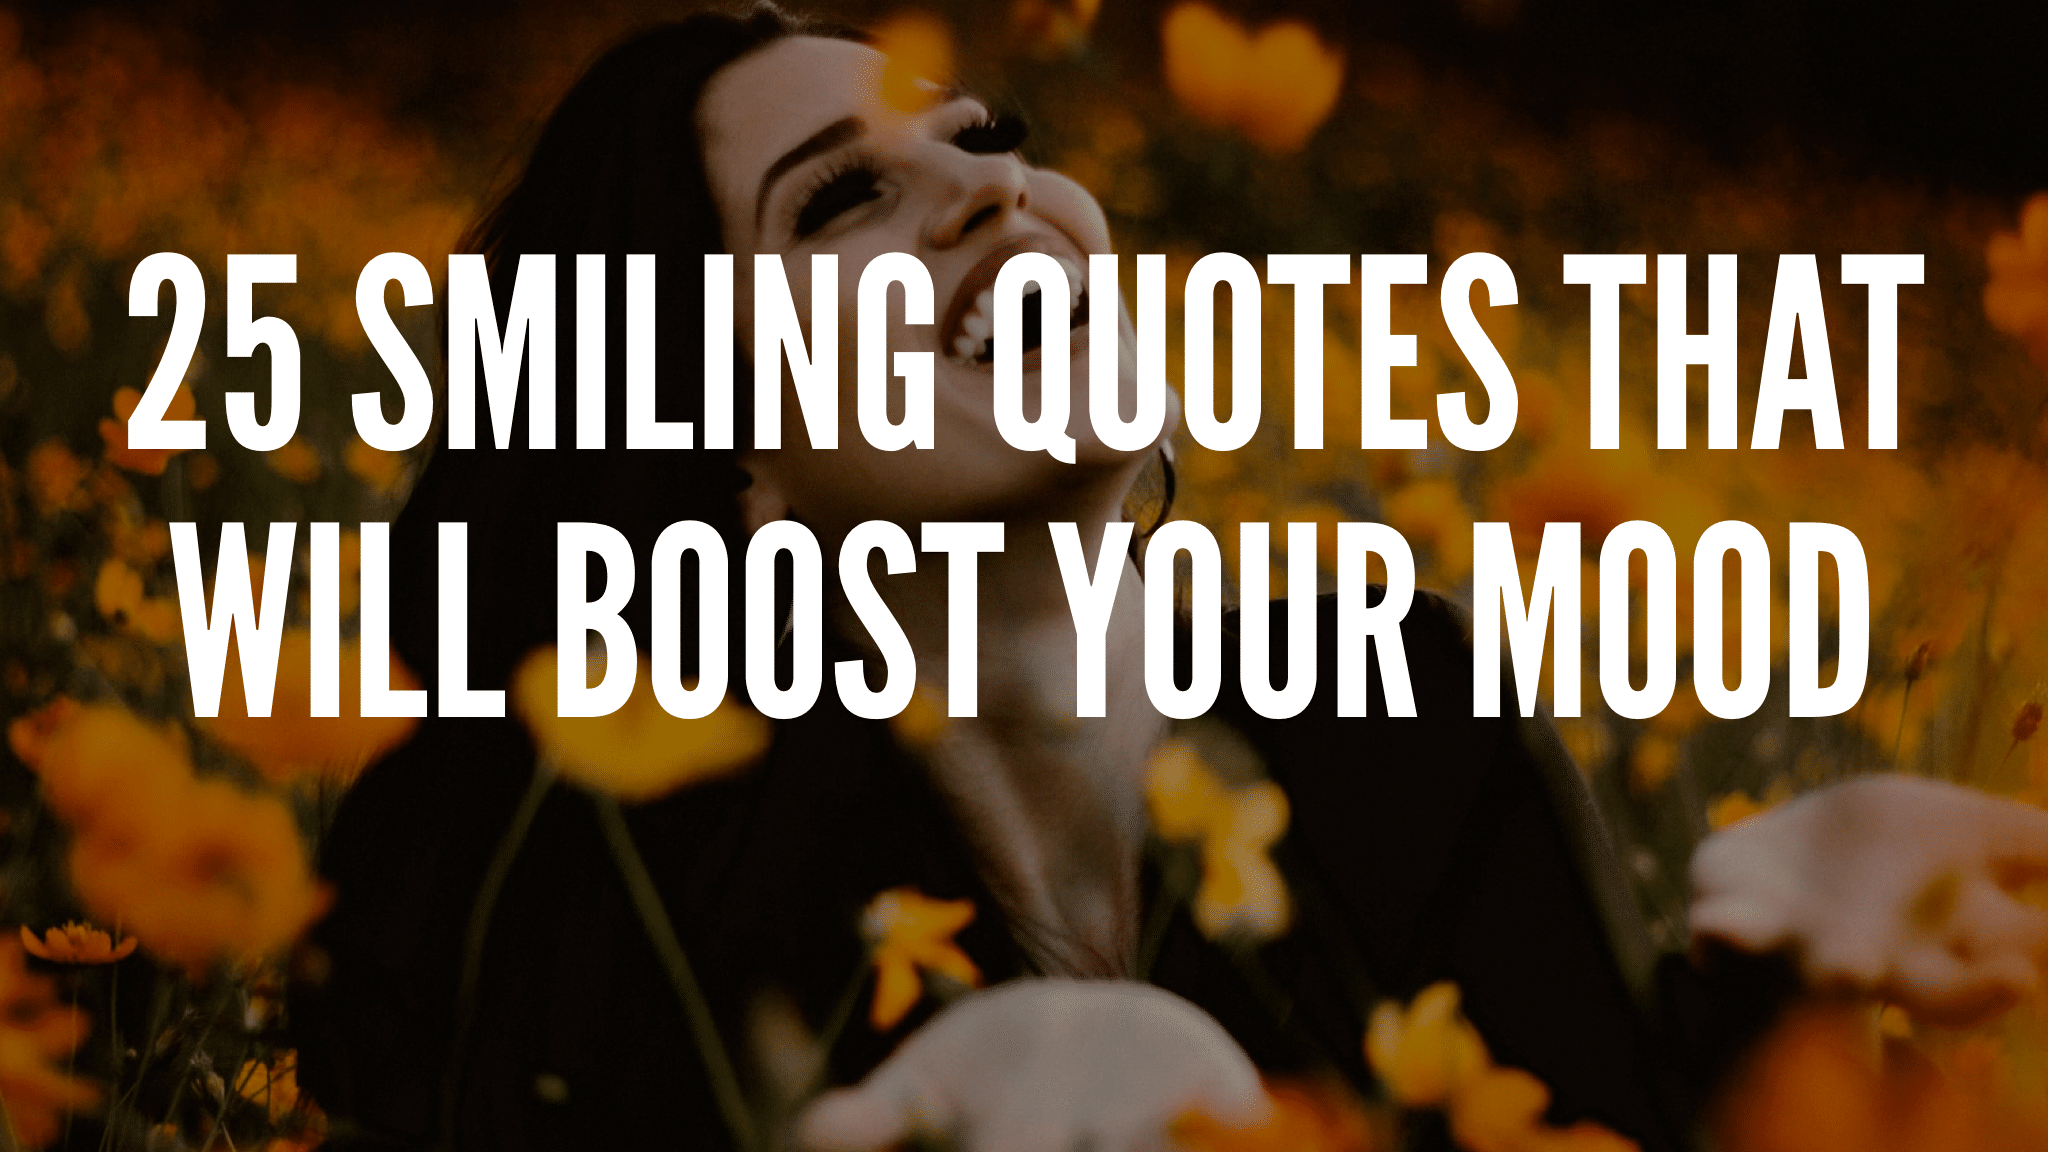 Smiling Quotes That Will Boost Your Mood